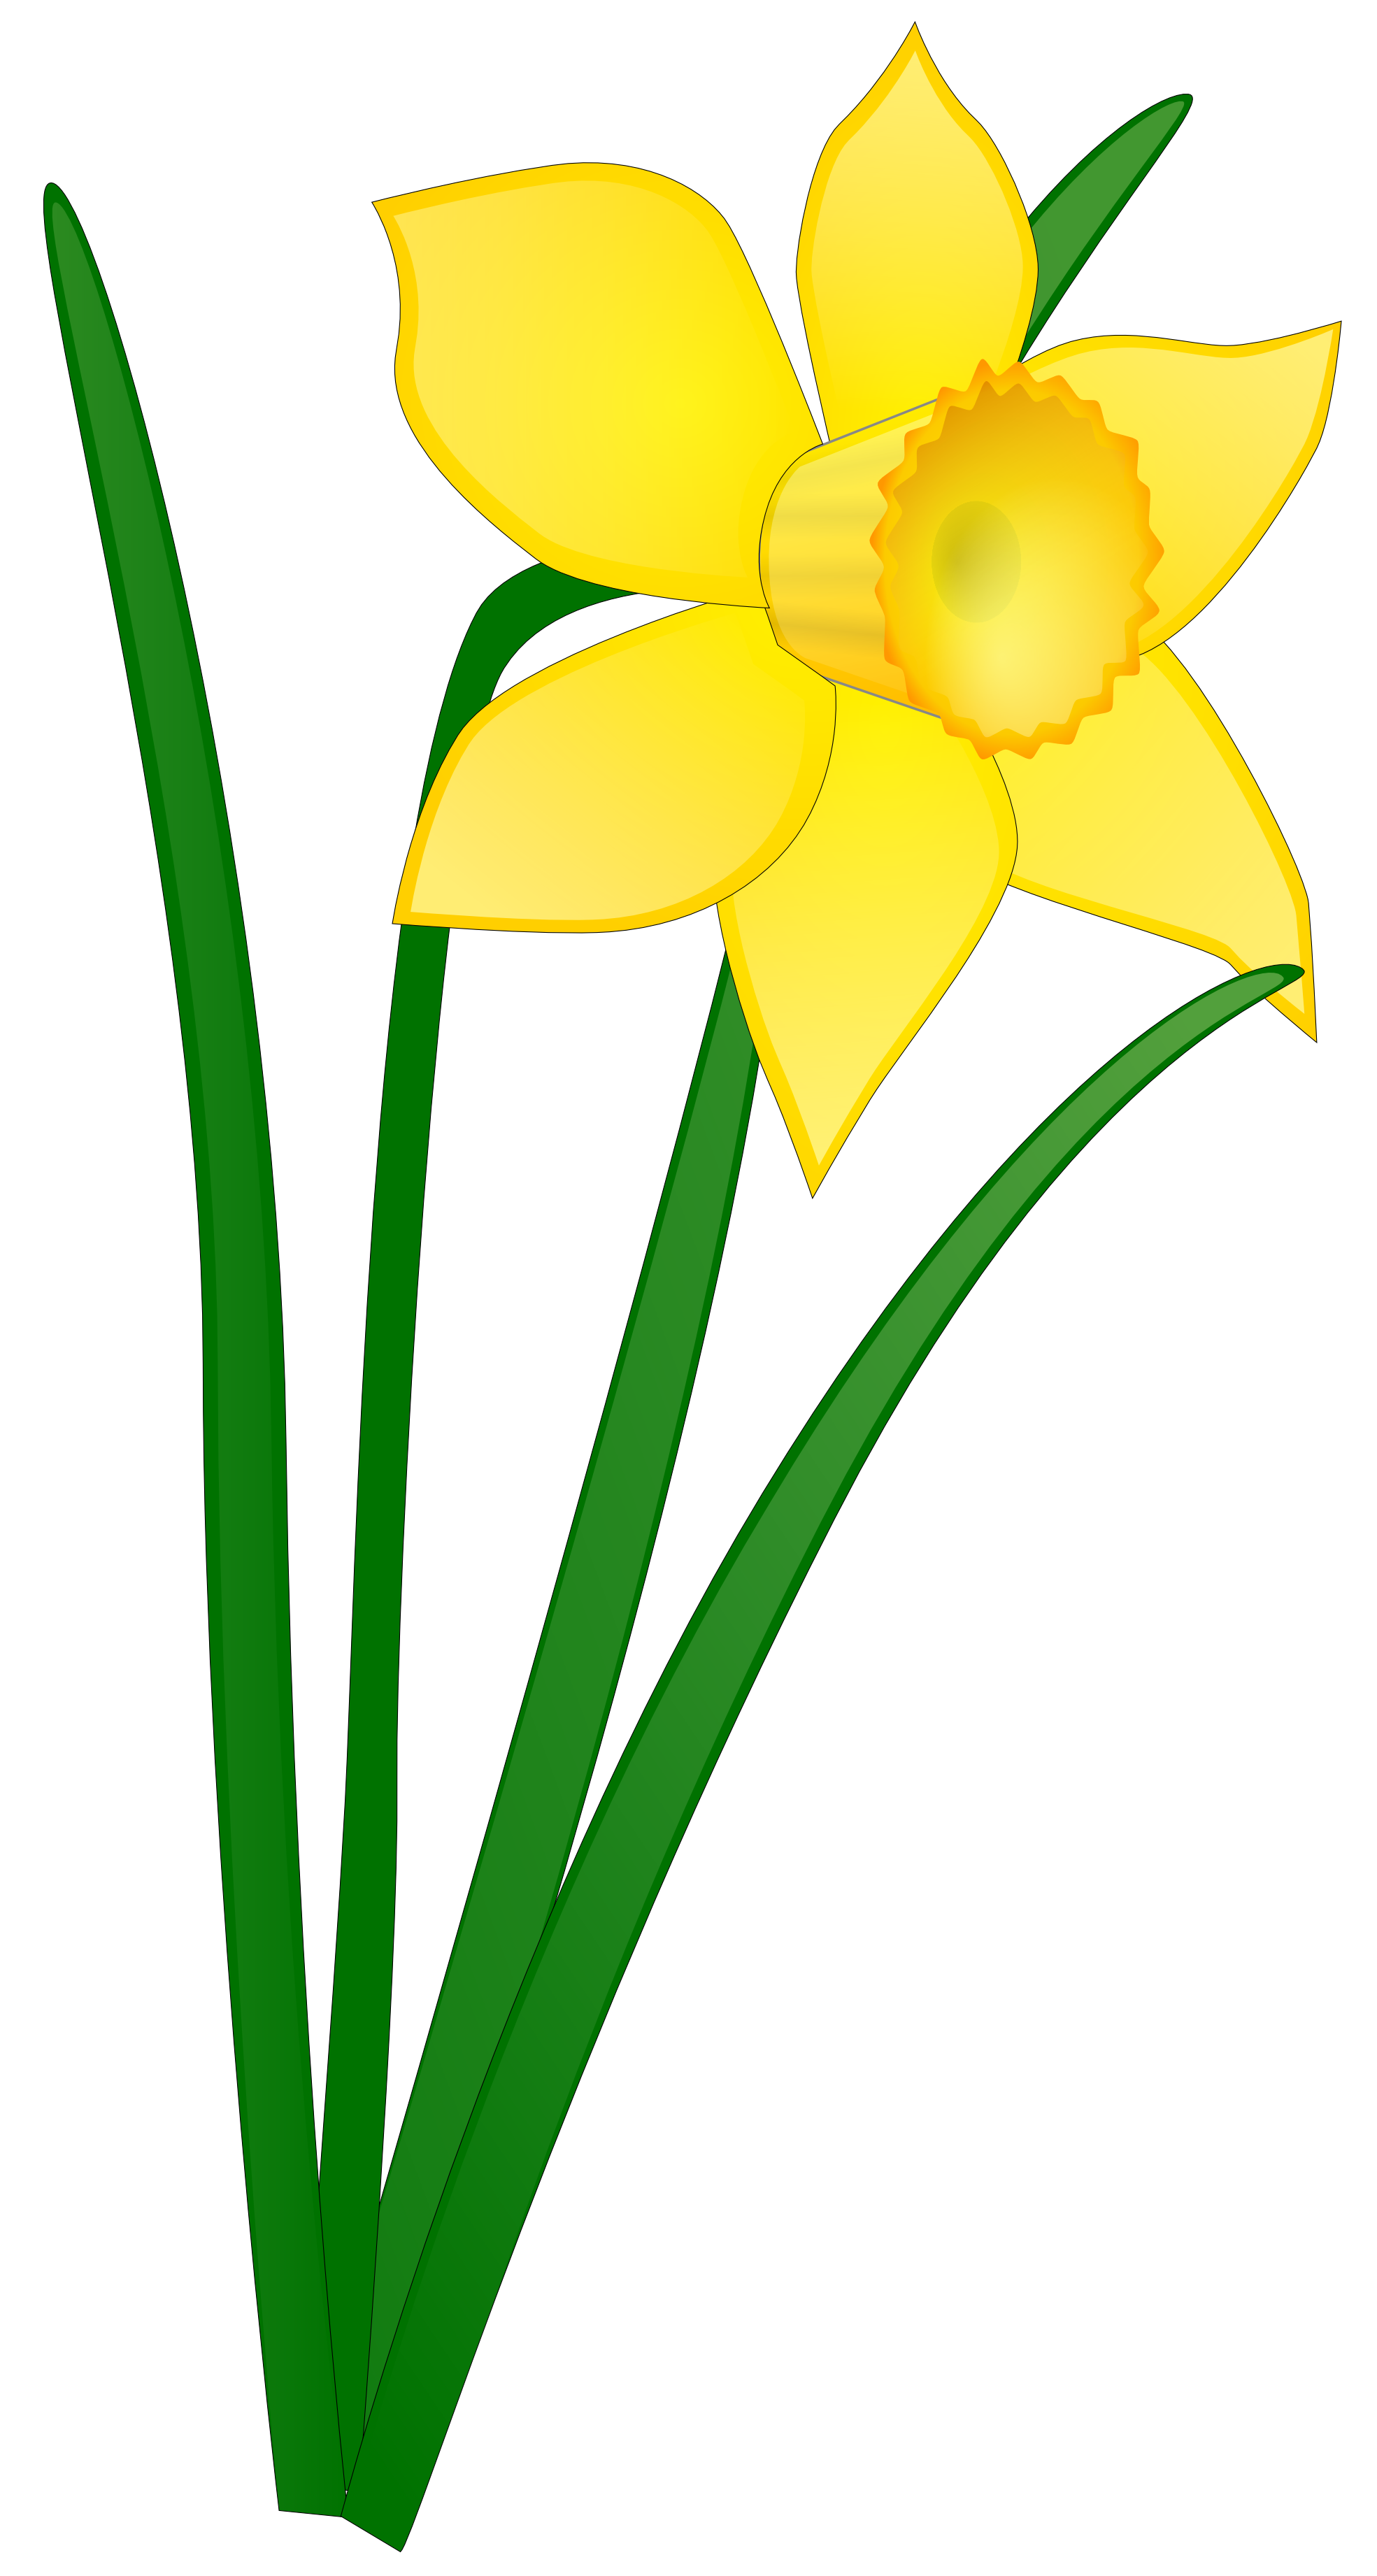 Flower No Background Clipart - Clipart Suggest